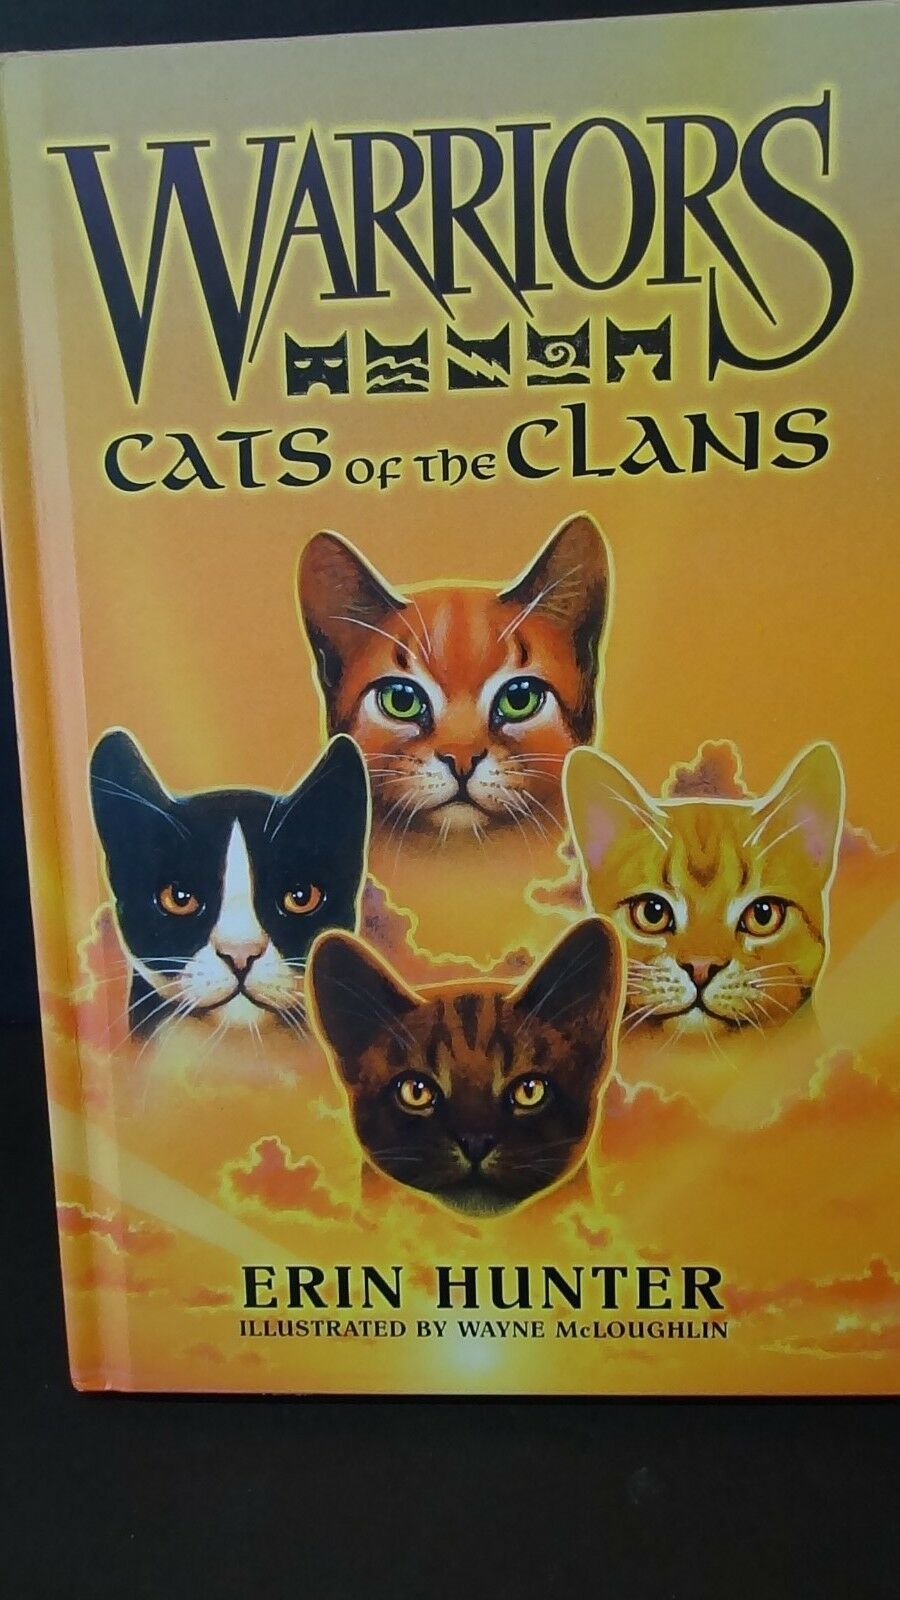 Warriors Field Guide Cats of the Clans No. 2 by Erin